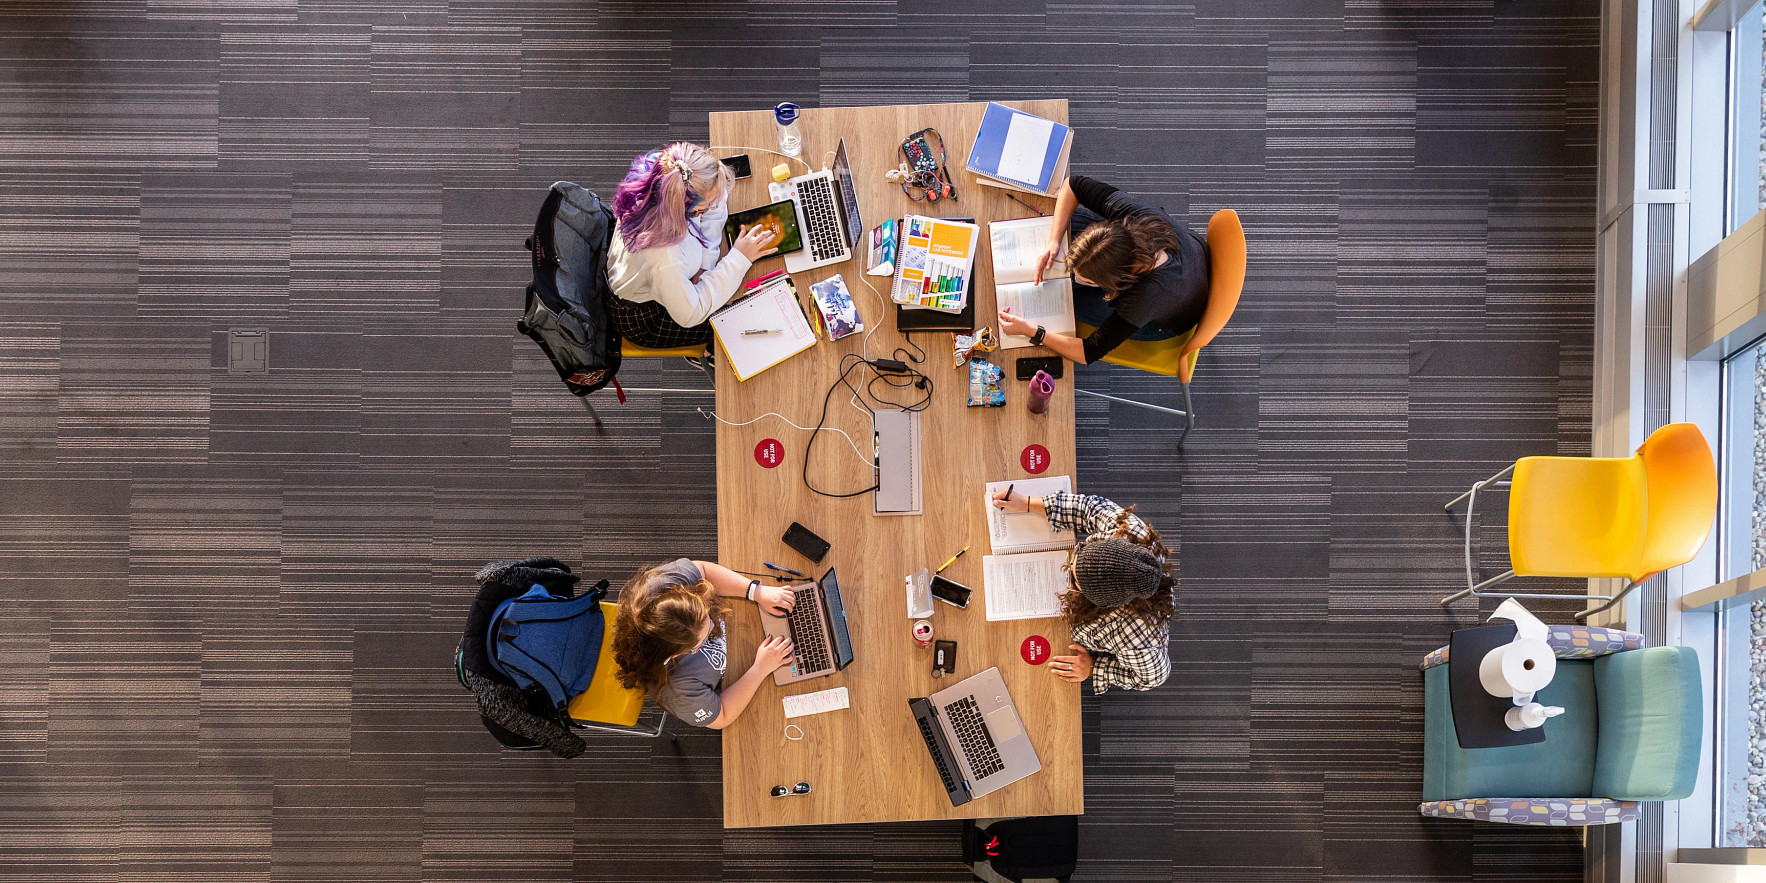 an overhead view of four students working at a table